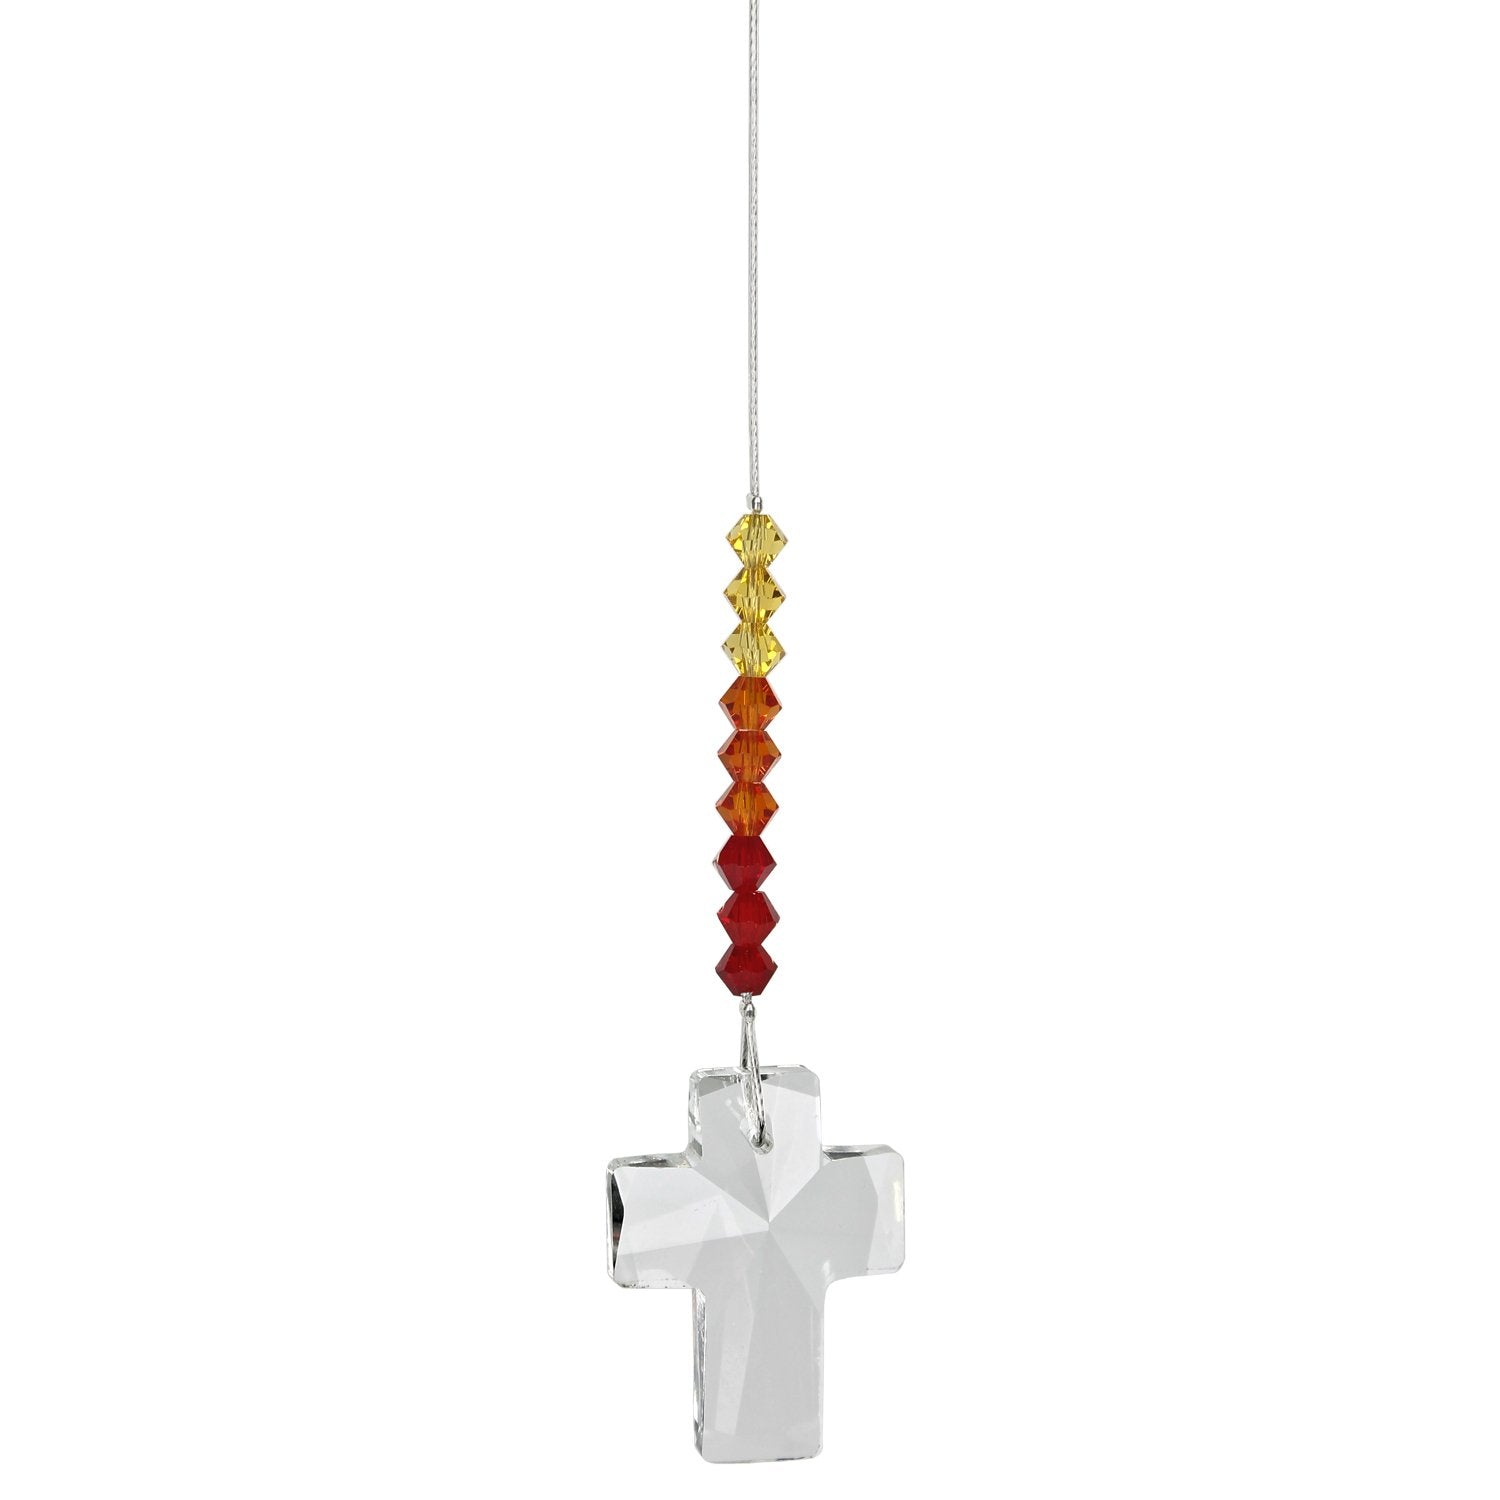 Crystal Cross Suncatcher - Sunrise alternate product image